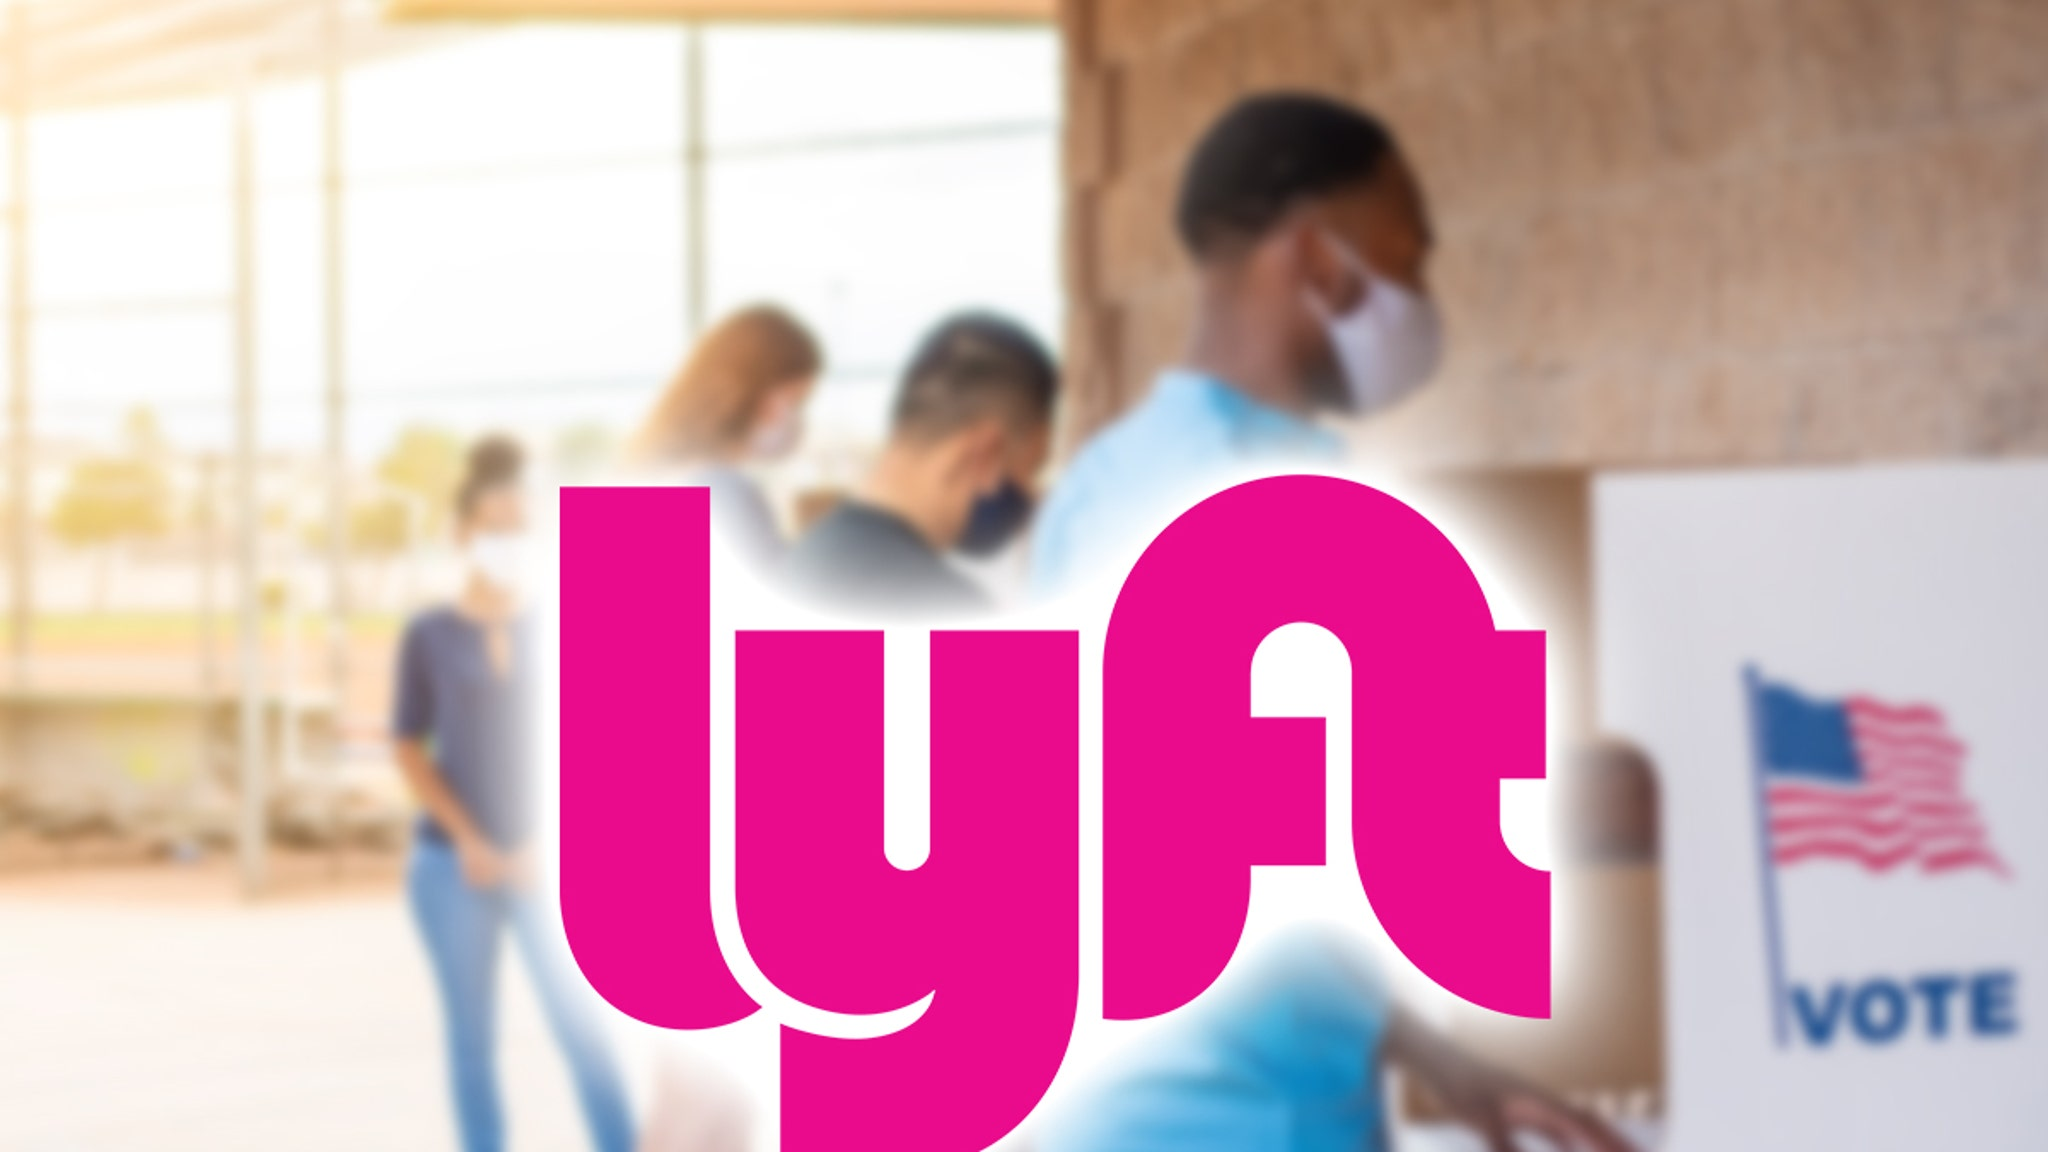 Lyft Offering Big Discounts to Voters ... In Some Cases Free Rides